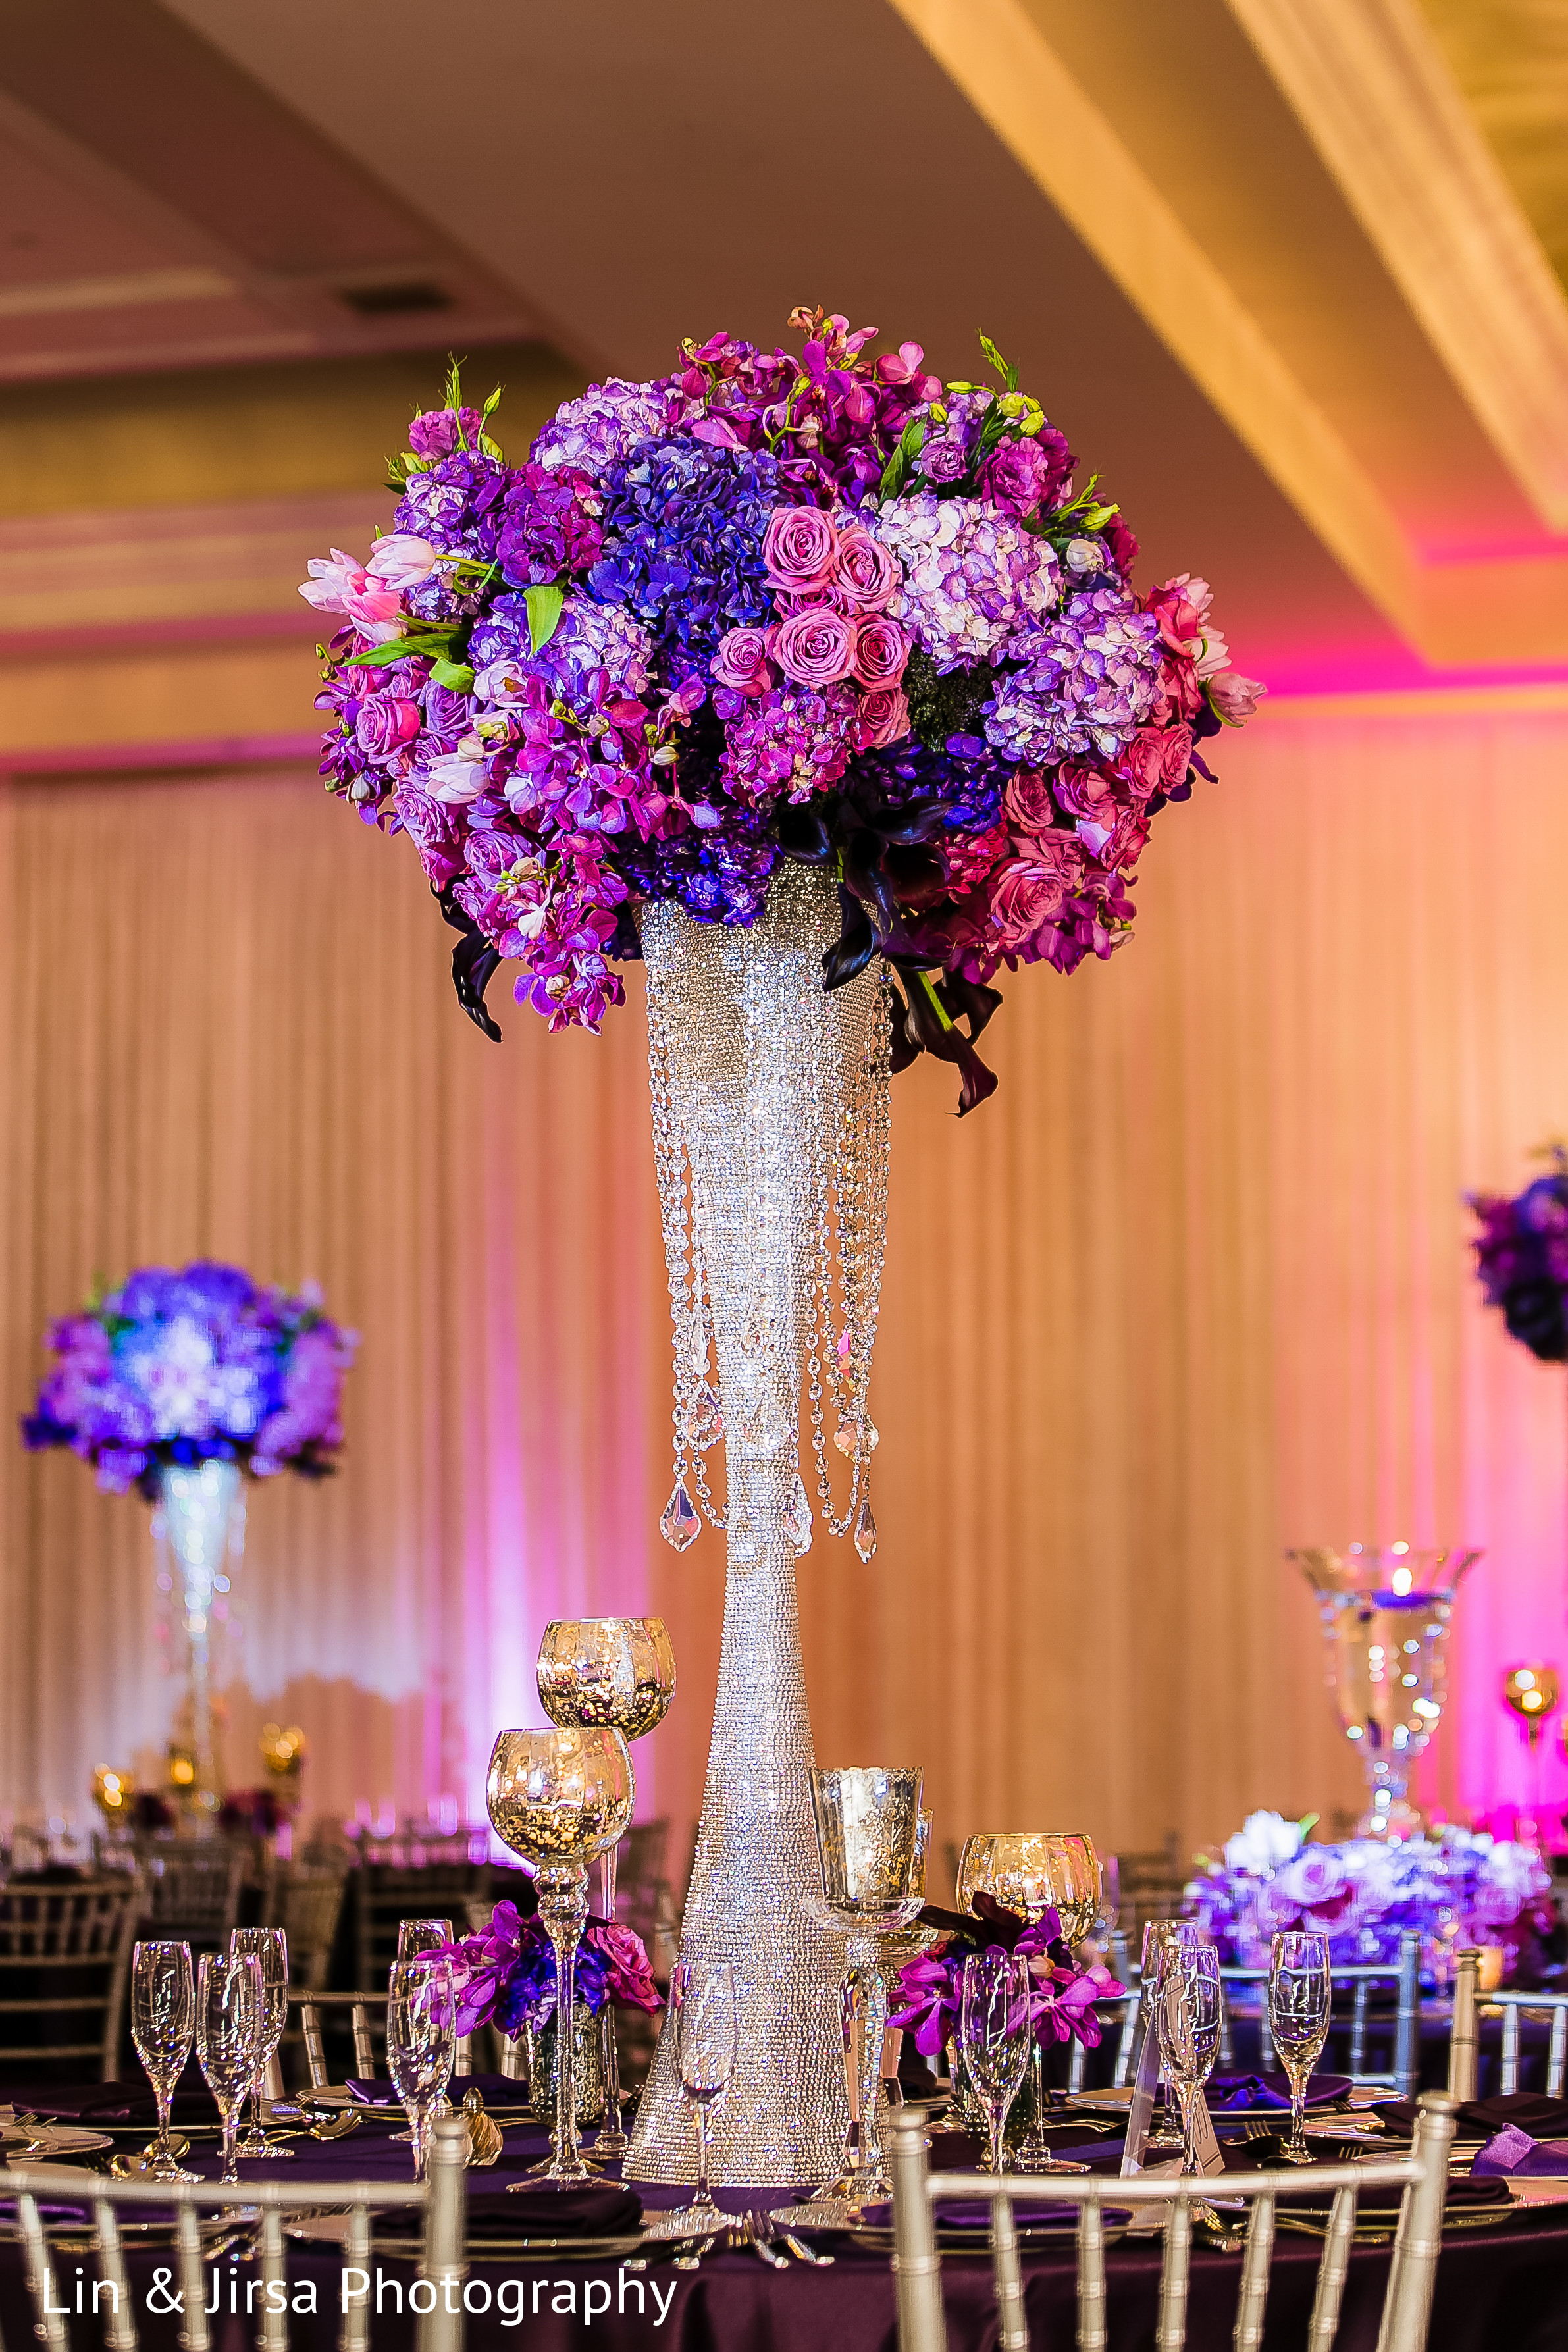 : flower decoration ideas for indian wedding - www.pureclipart.com